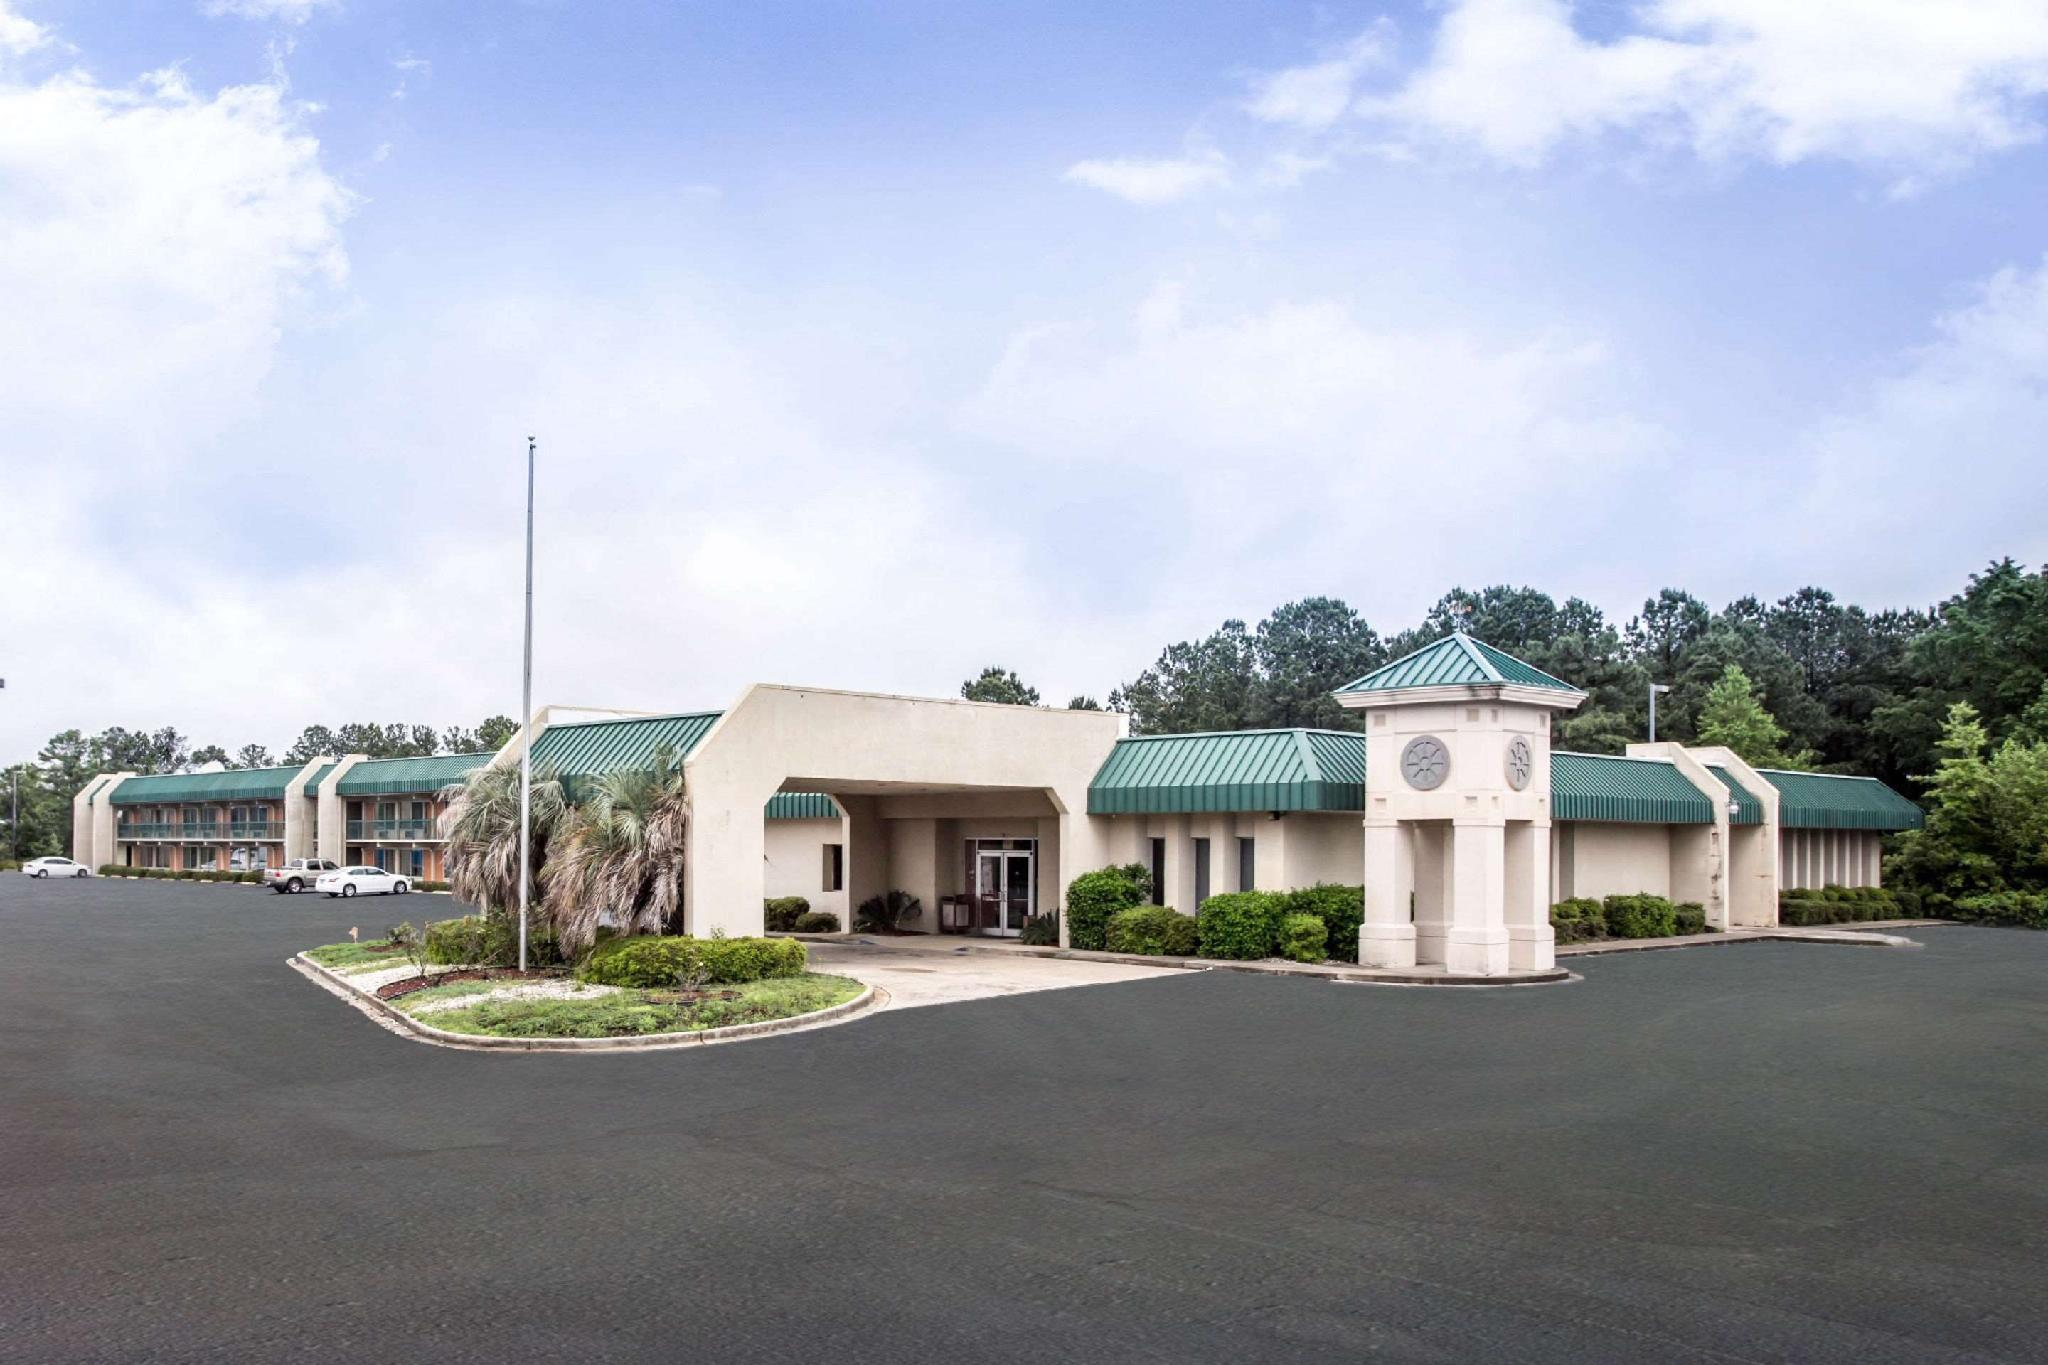 Rodeway Inn And Conference Center